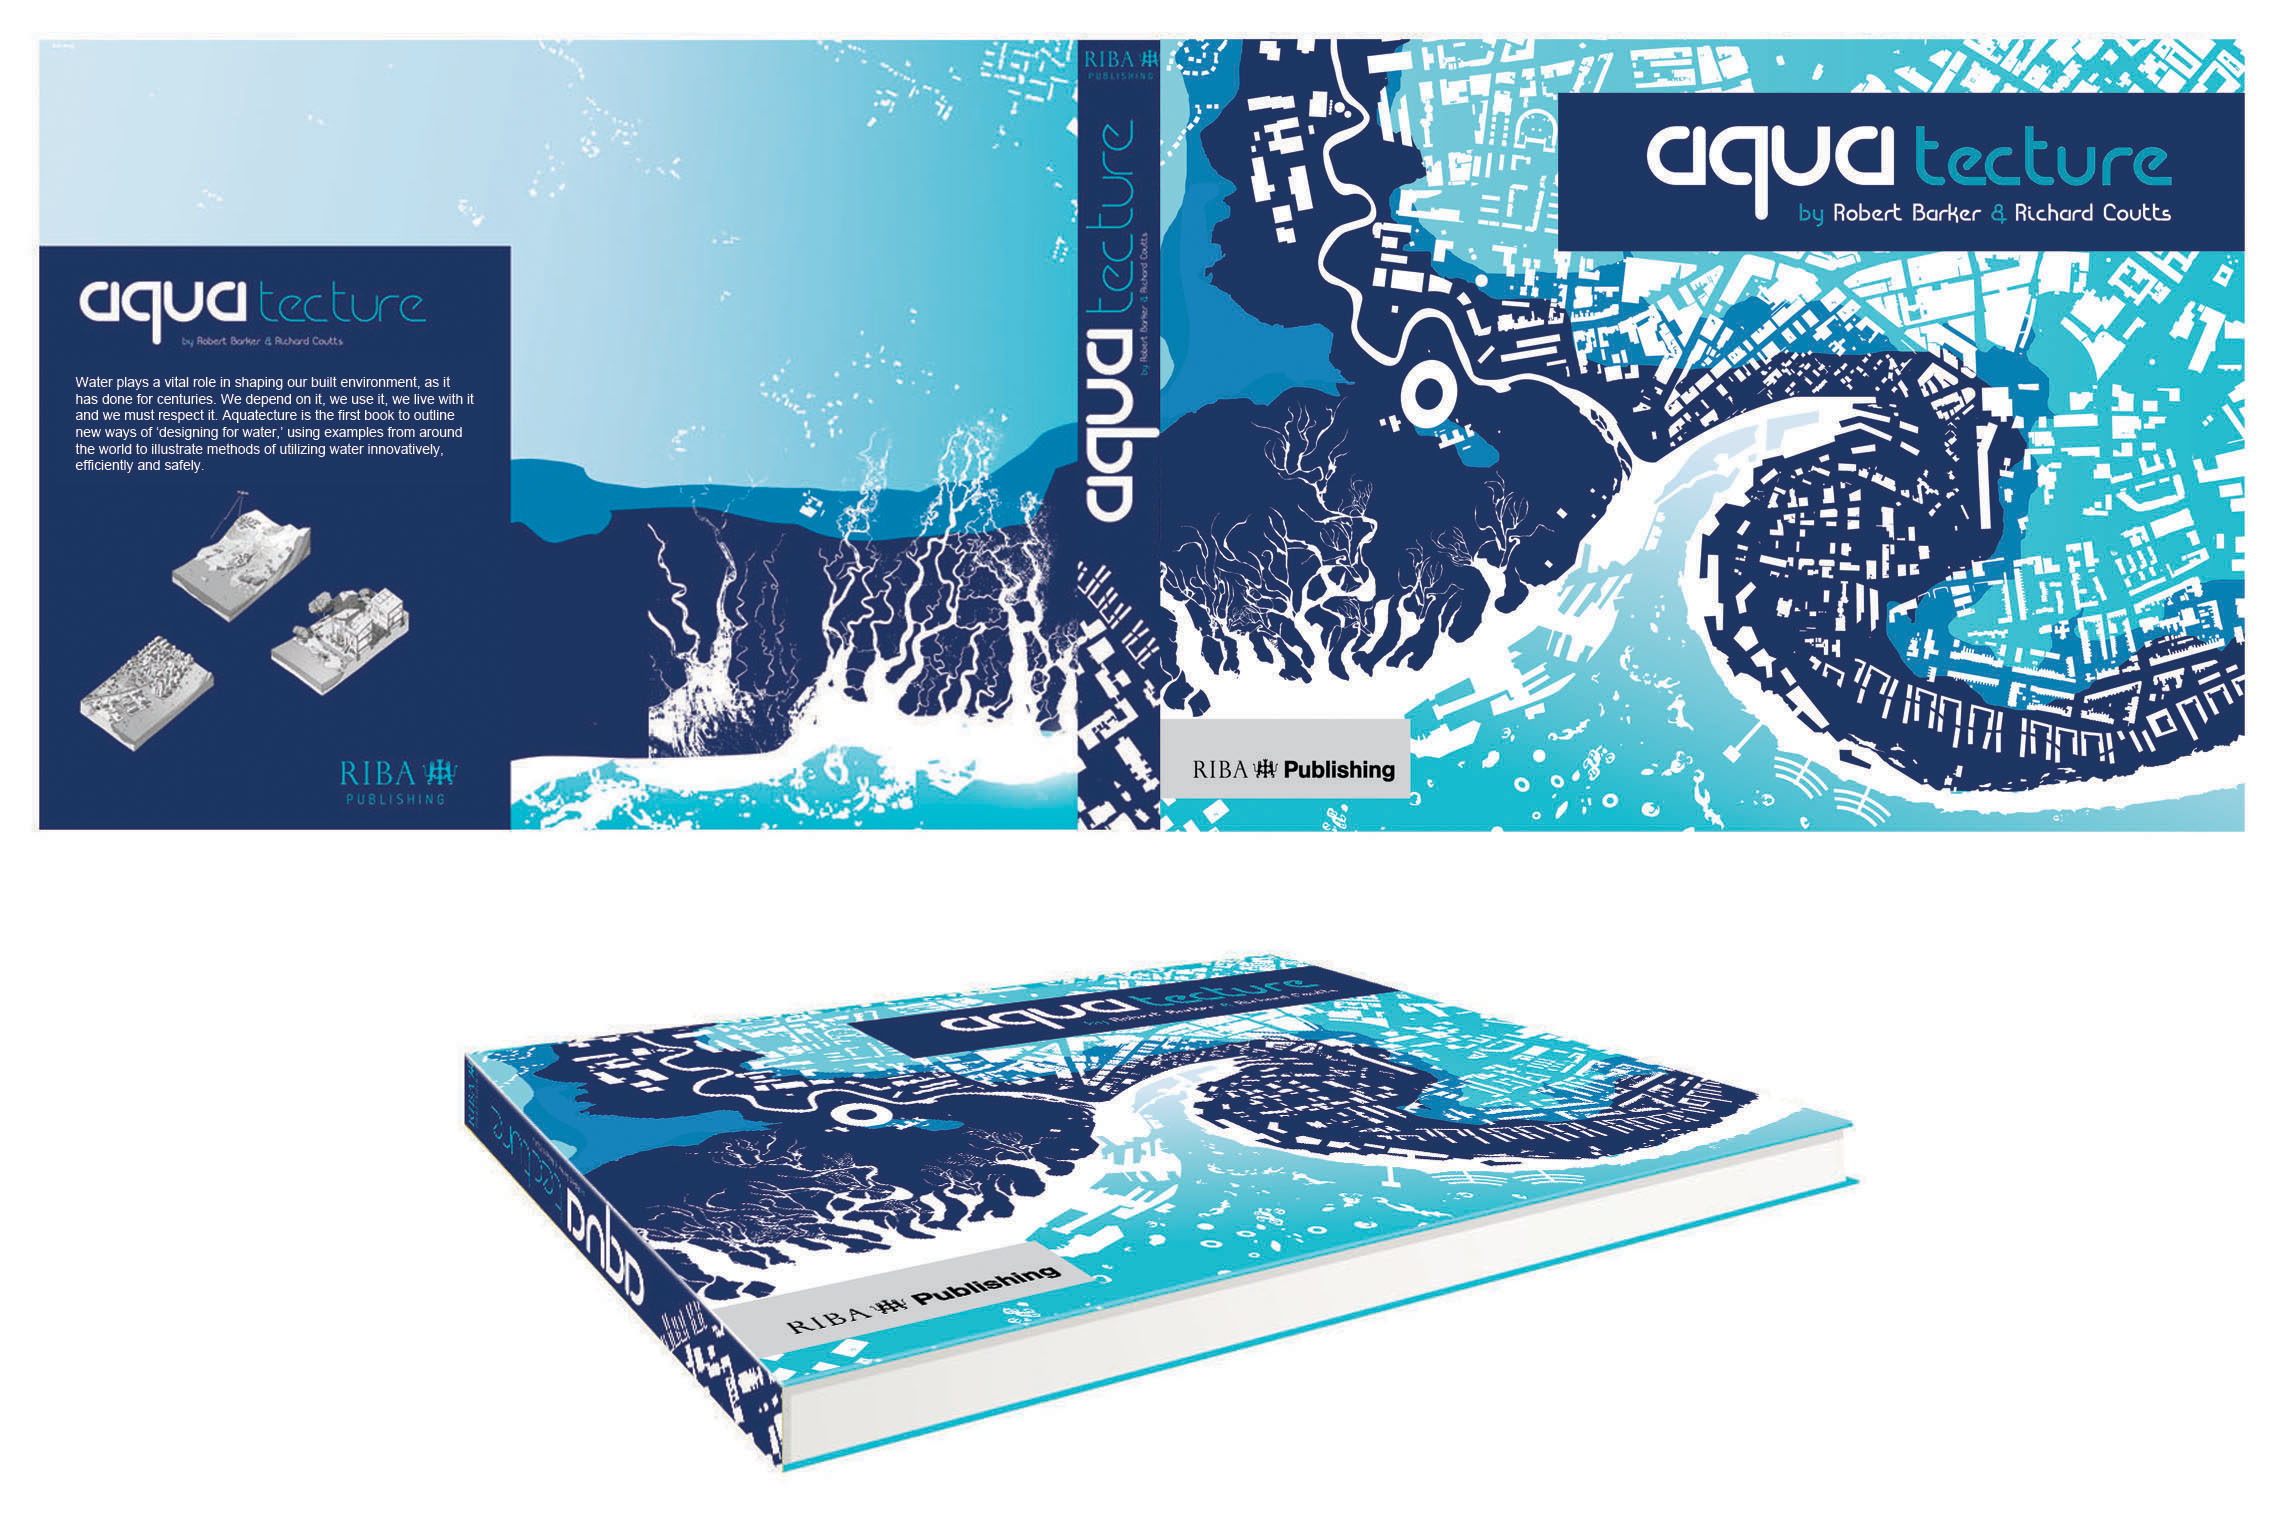 Aquatecture-book-cover.jpg